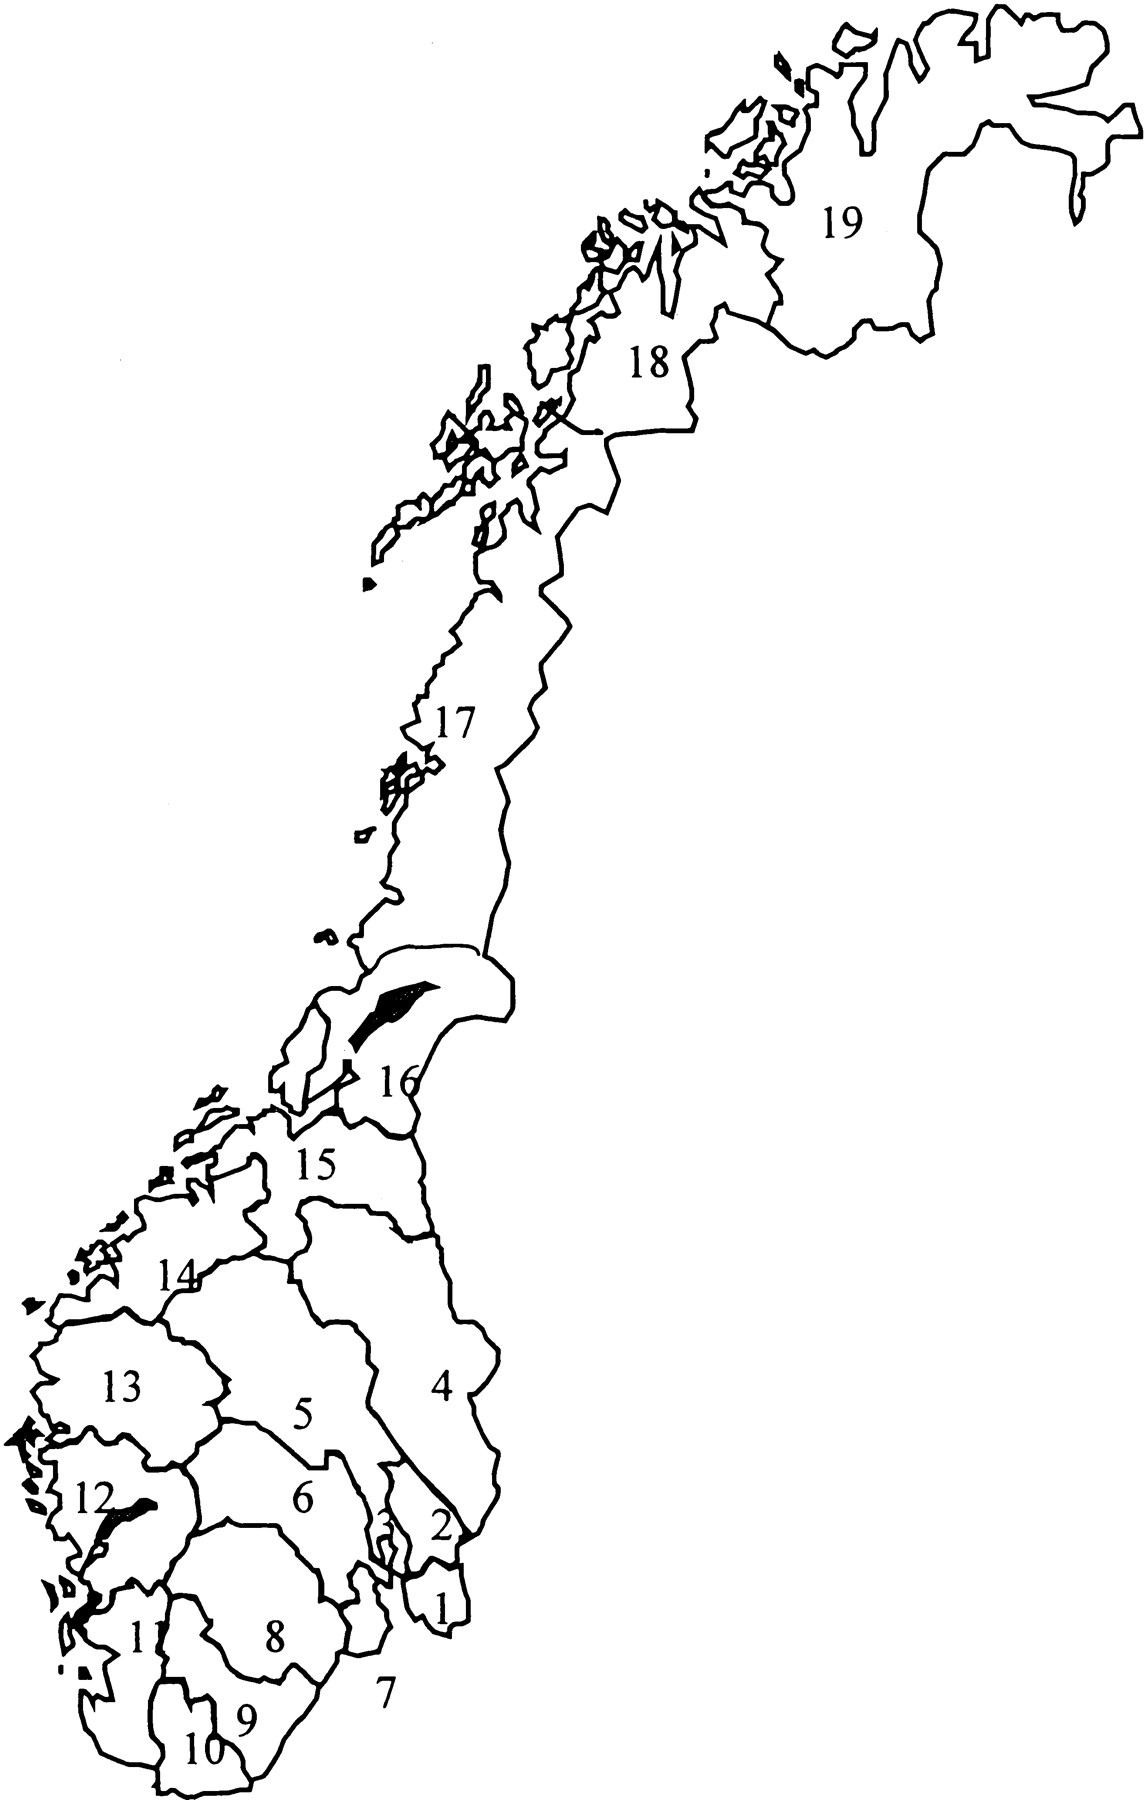 Increasing Mortality From Amyotrophic Lateral Sclerosis In Norway - Norway map drawing